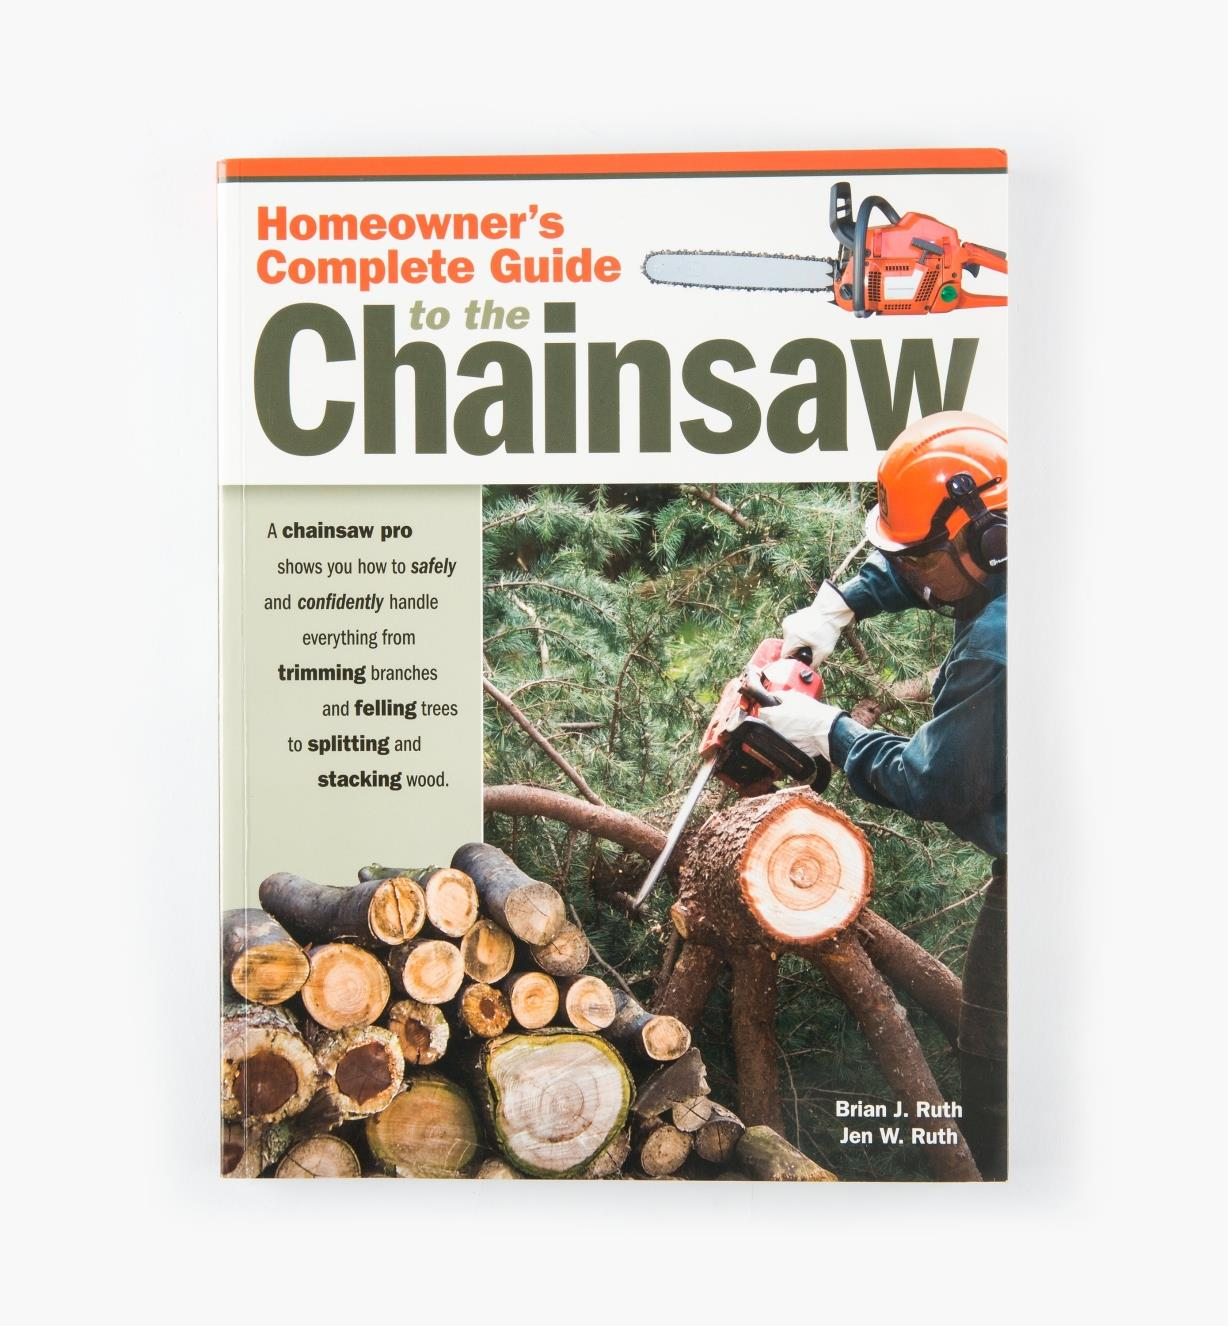 49L5117 - Homeowner's Complete Guide to the Chainsaw